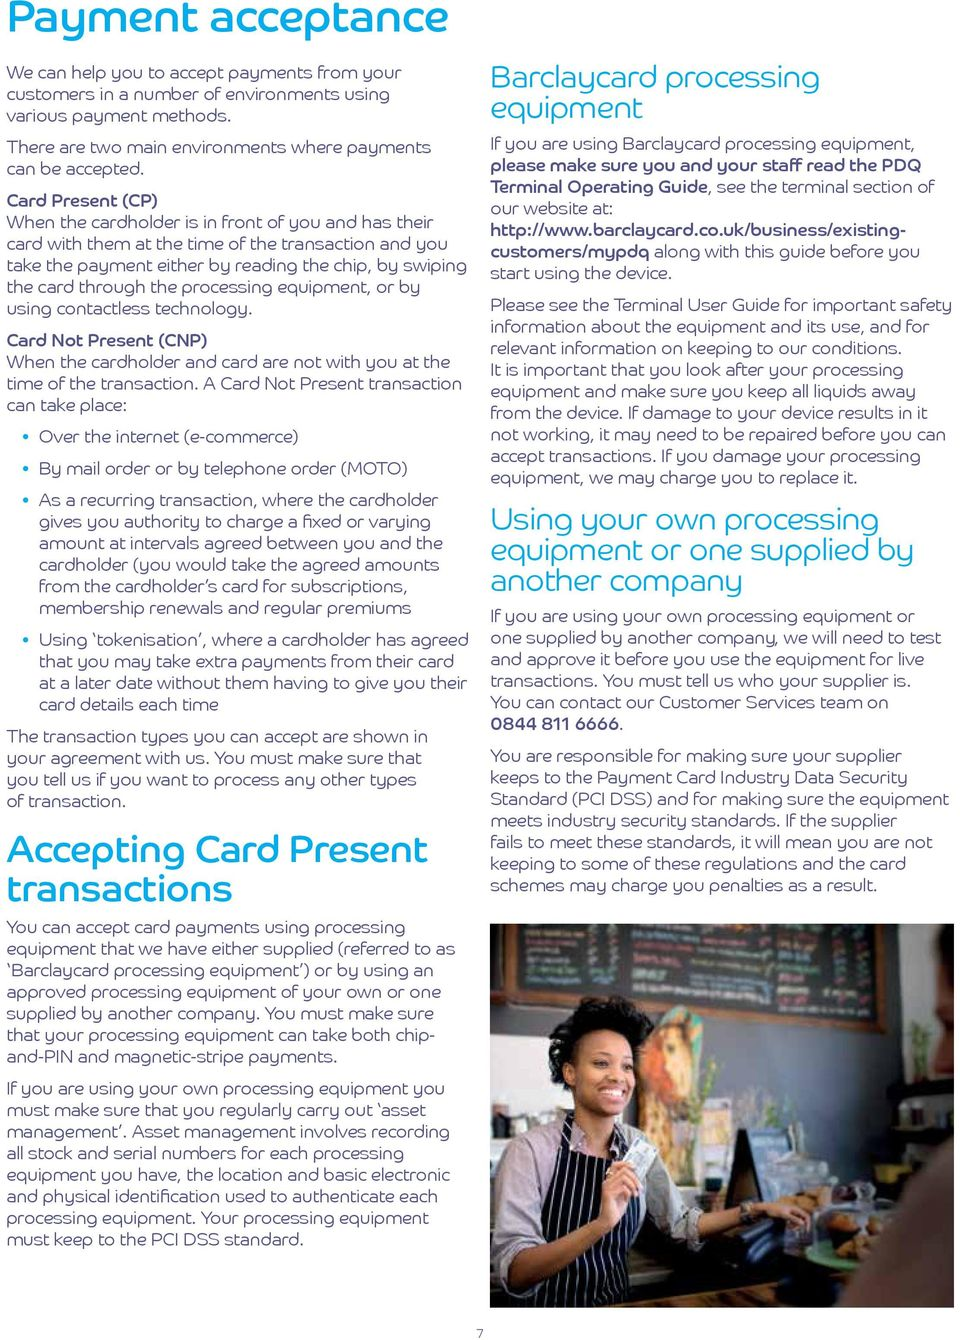 the processing equipment, or by using contactless technology. Card Not Present (CNP) When the cardholder and card are not with you at the time of the transaction.